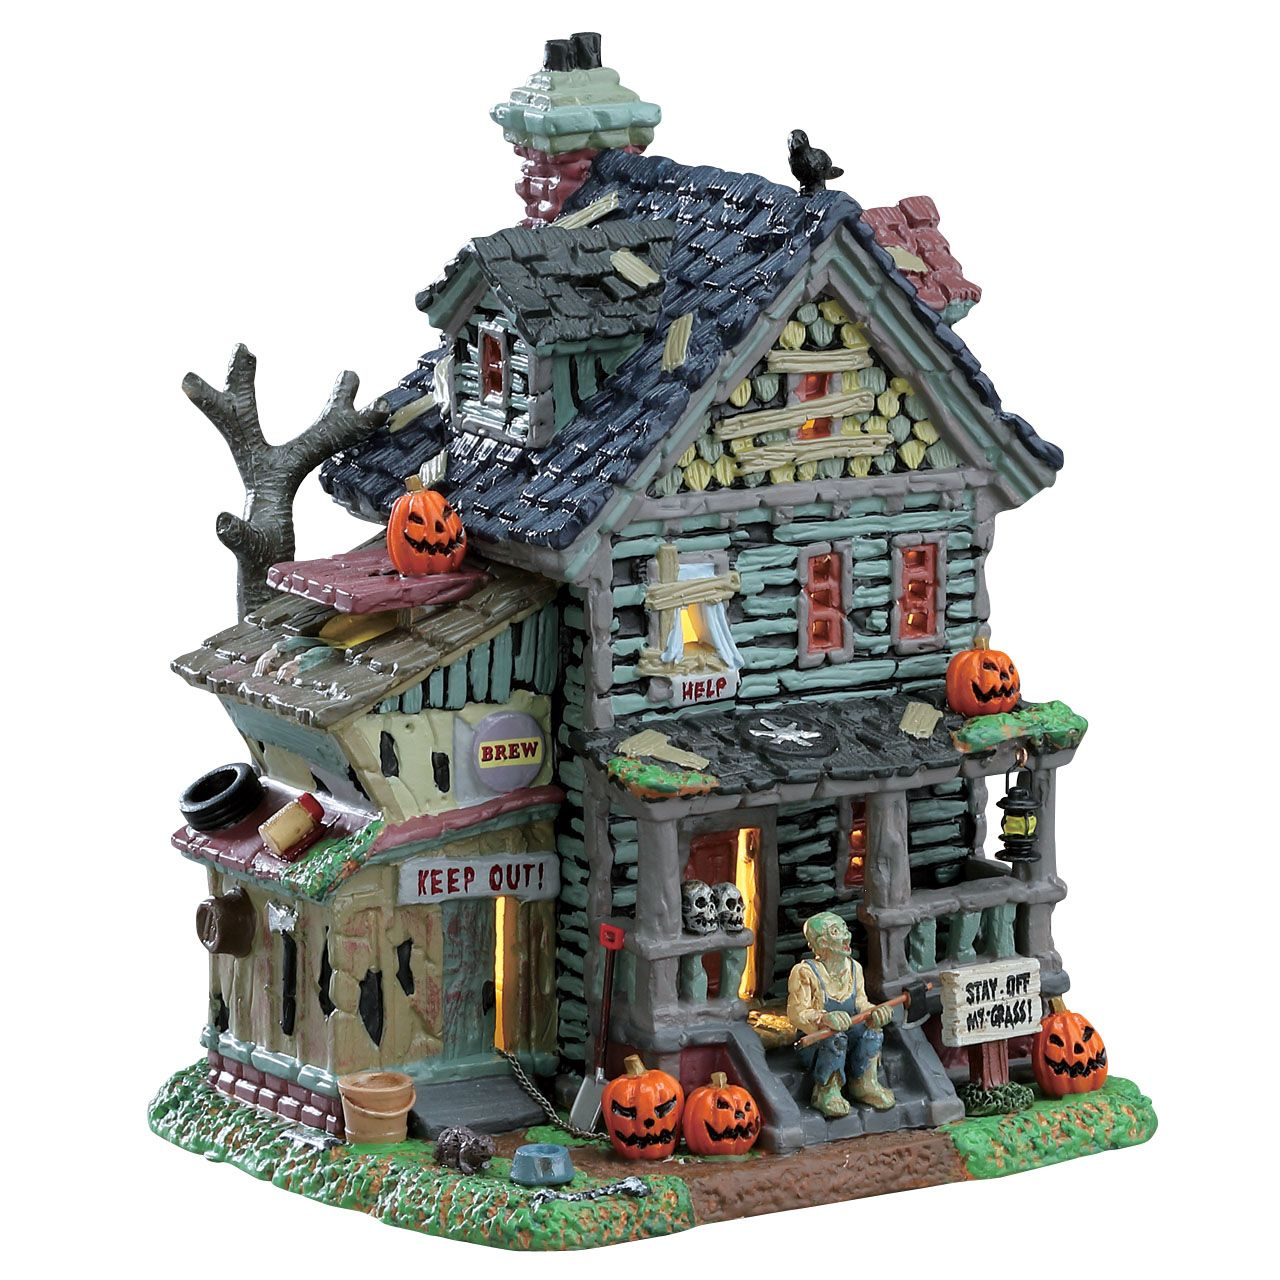 lemax creepy neighborhood house. sku# 75185. released in 2017 as a